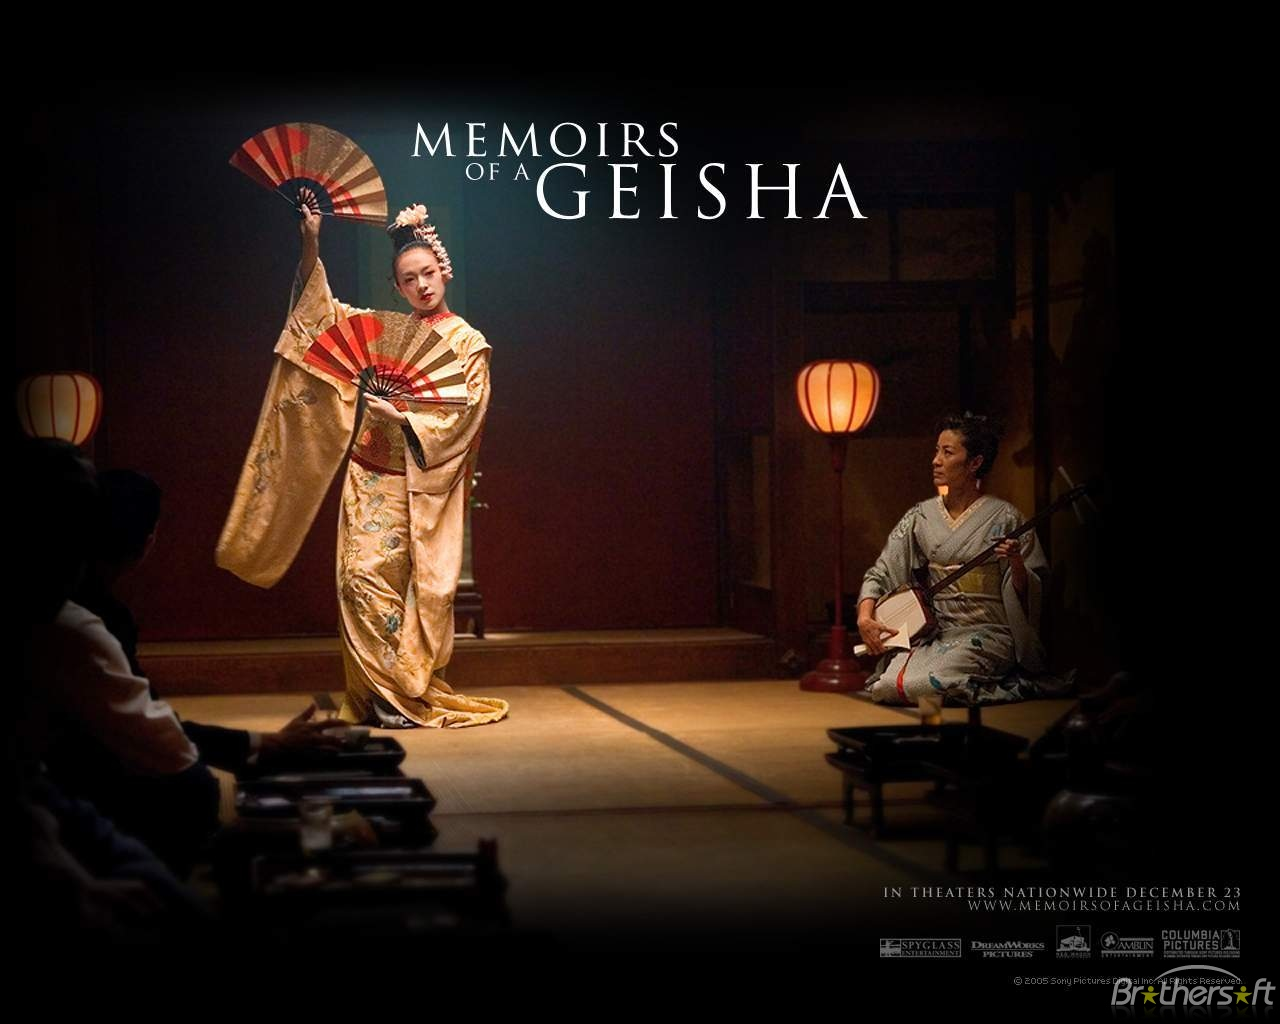 Download Memoirs of a Geisha Wallpaper Memoirs of a Geisha 1280x1024